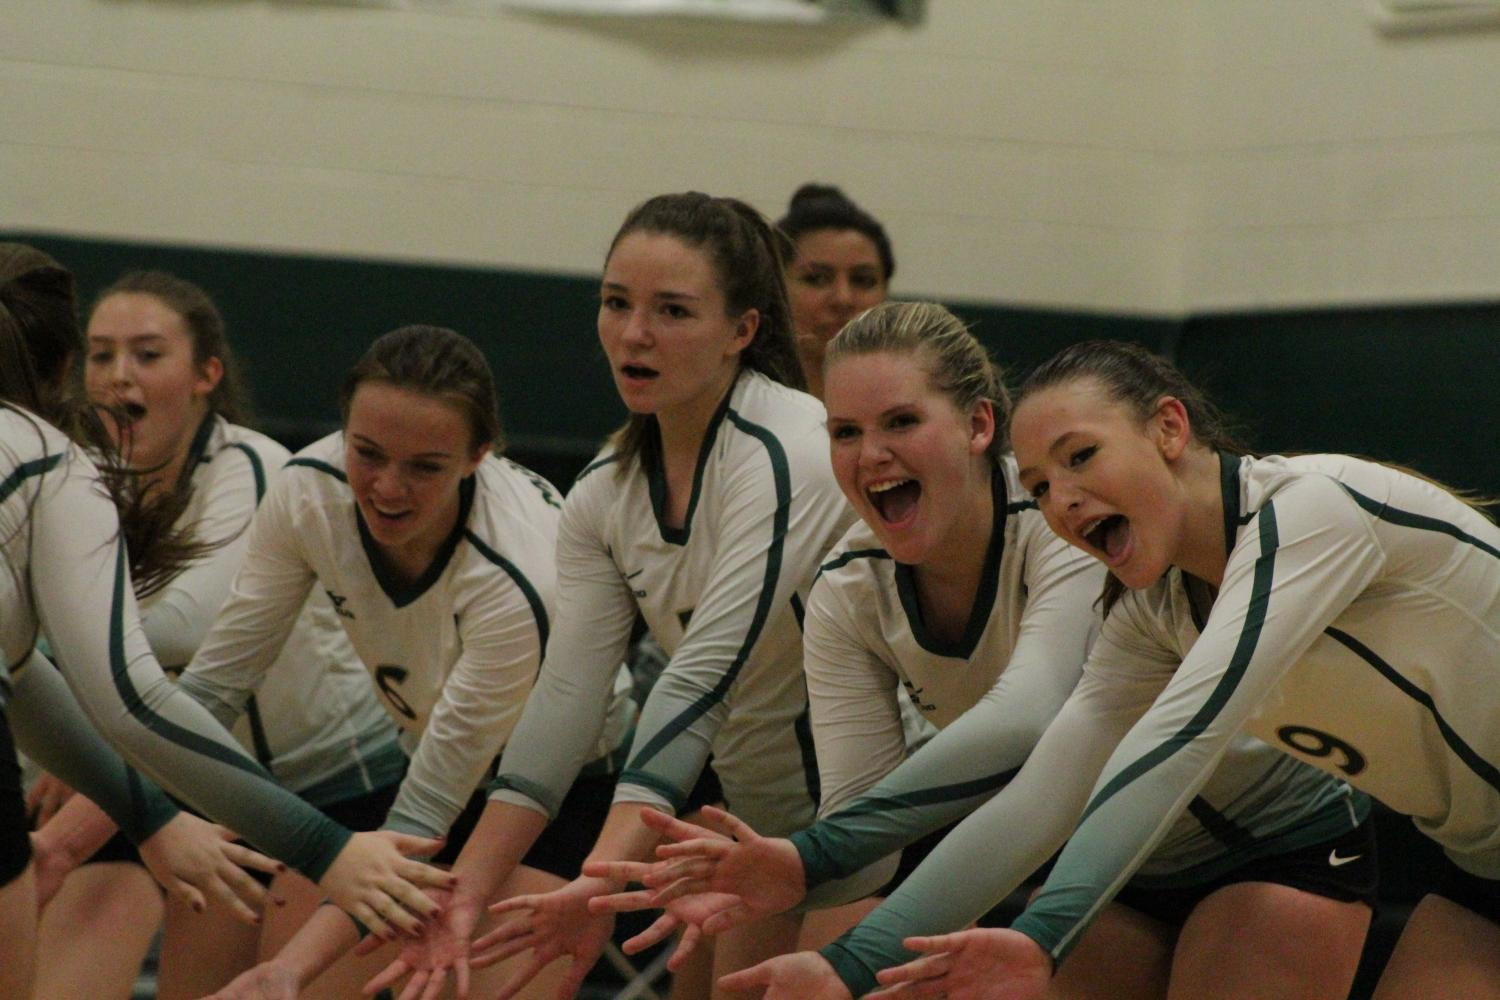 Teagan Nevada (10), Abbie Boren (11), McKayla Cully (11) and Sarah Kost (10)  are all part of the varsity team.